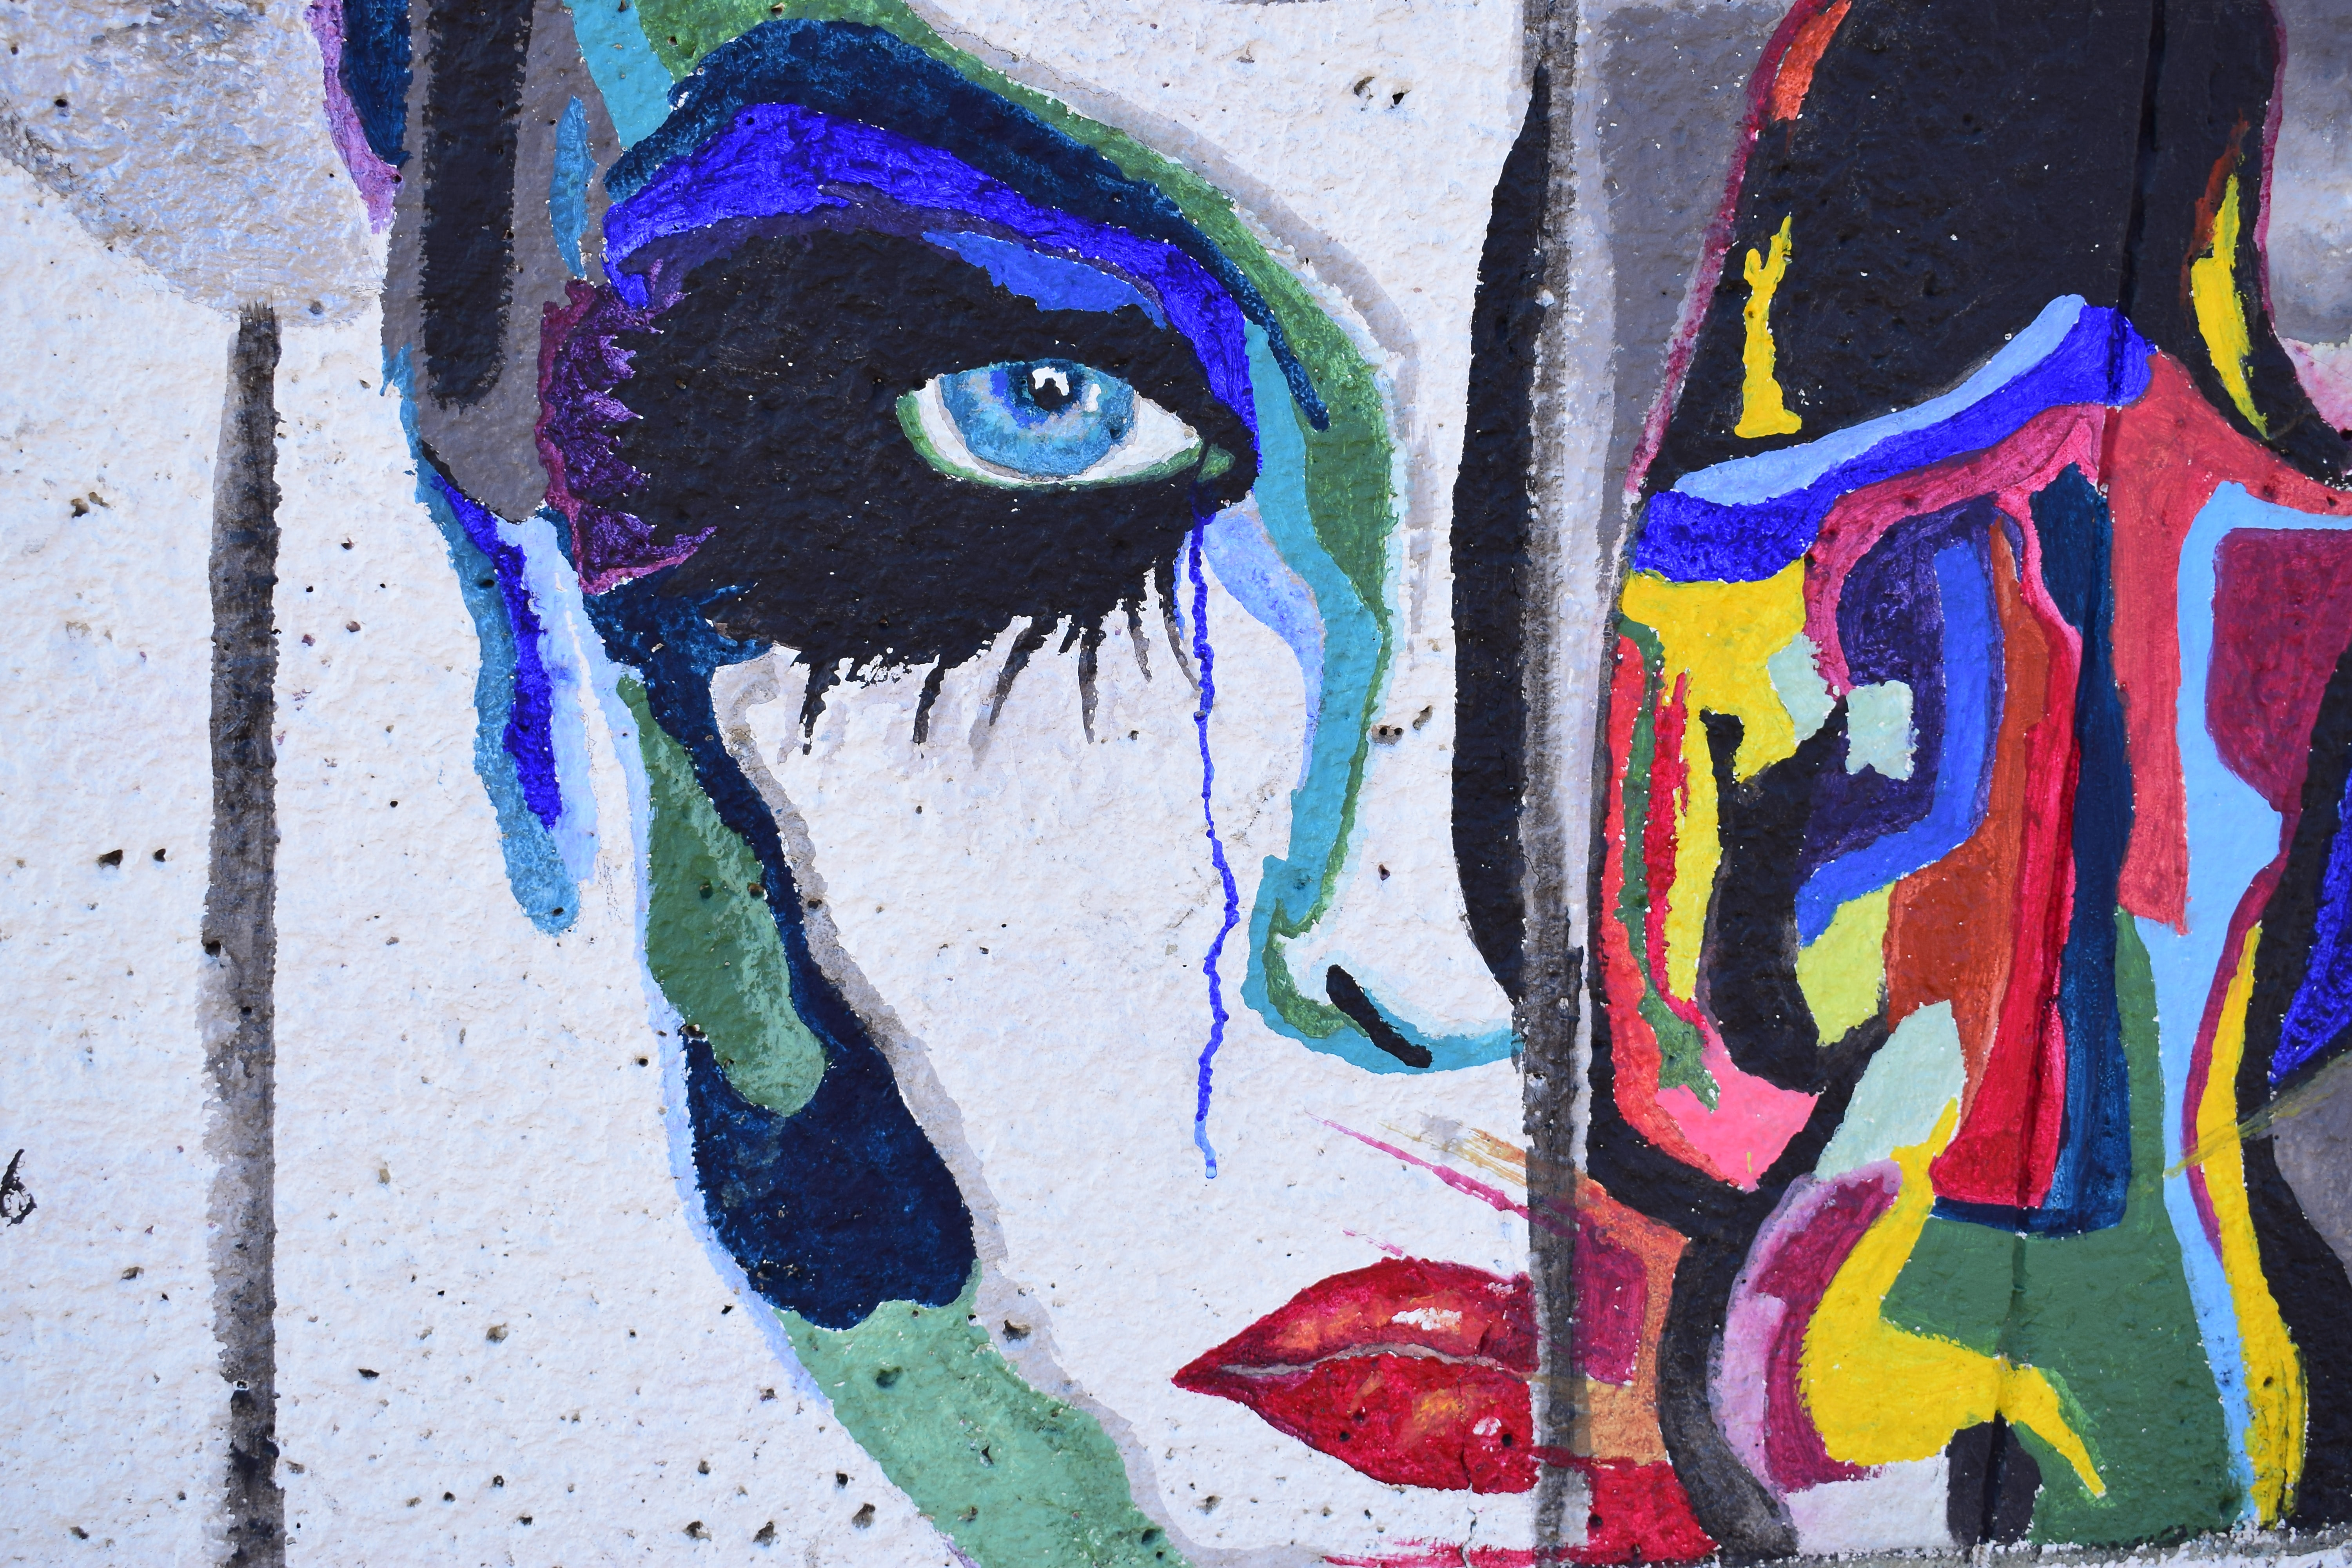 An abstract female face painting.